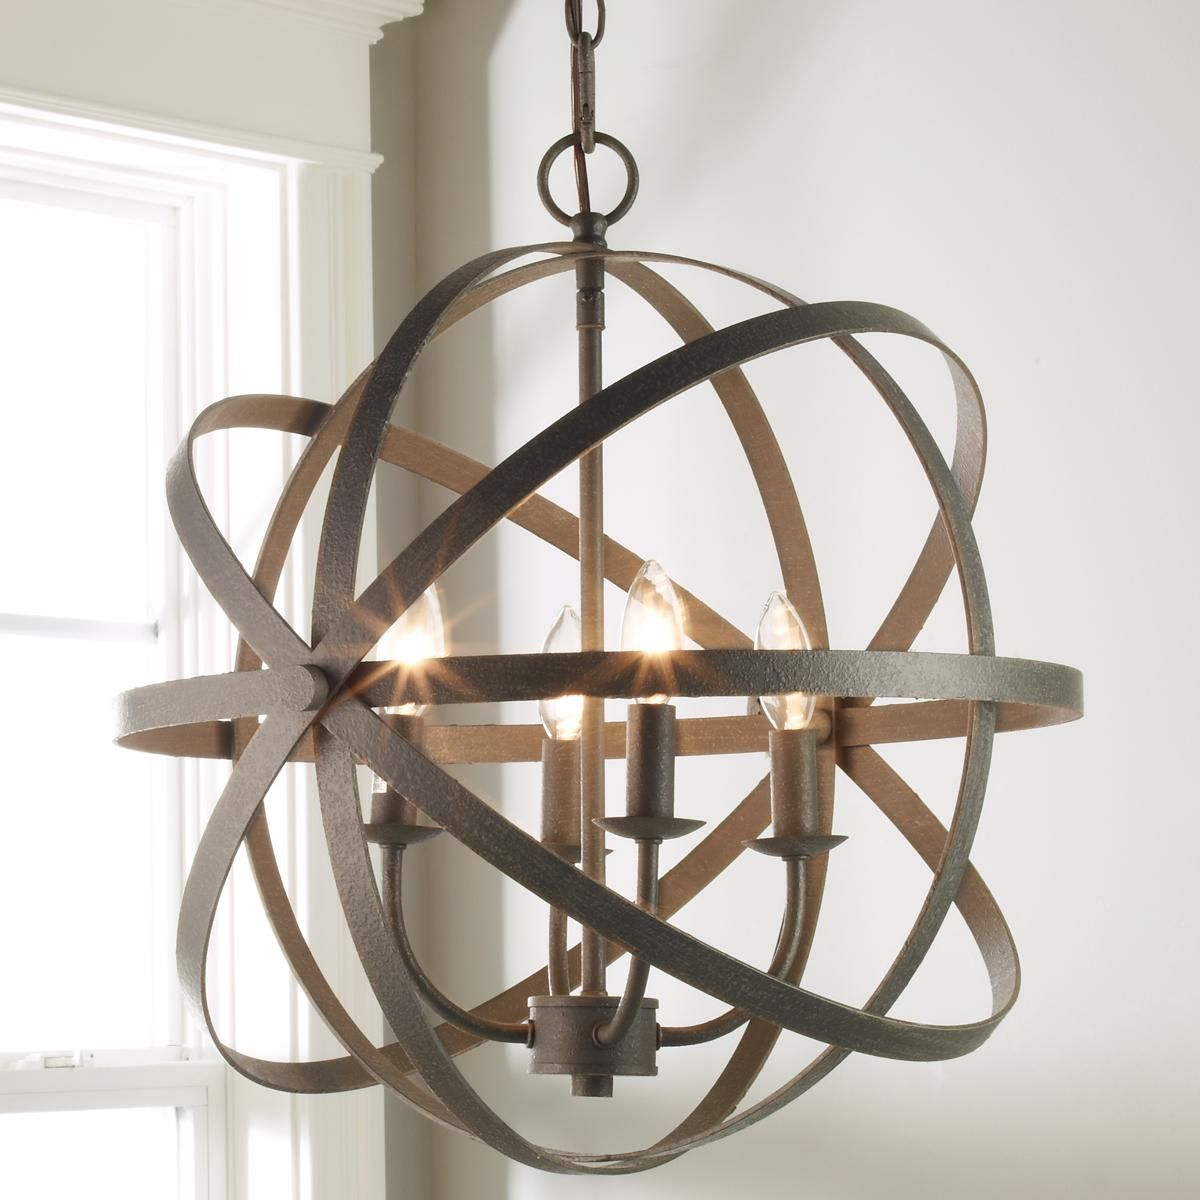 Zinc Orbit Globe Chandelier - 4 Light | My Style In 2019 with Joon 6-Light Globe Chandeliers (Image 29 of 30)